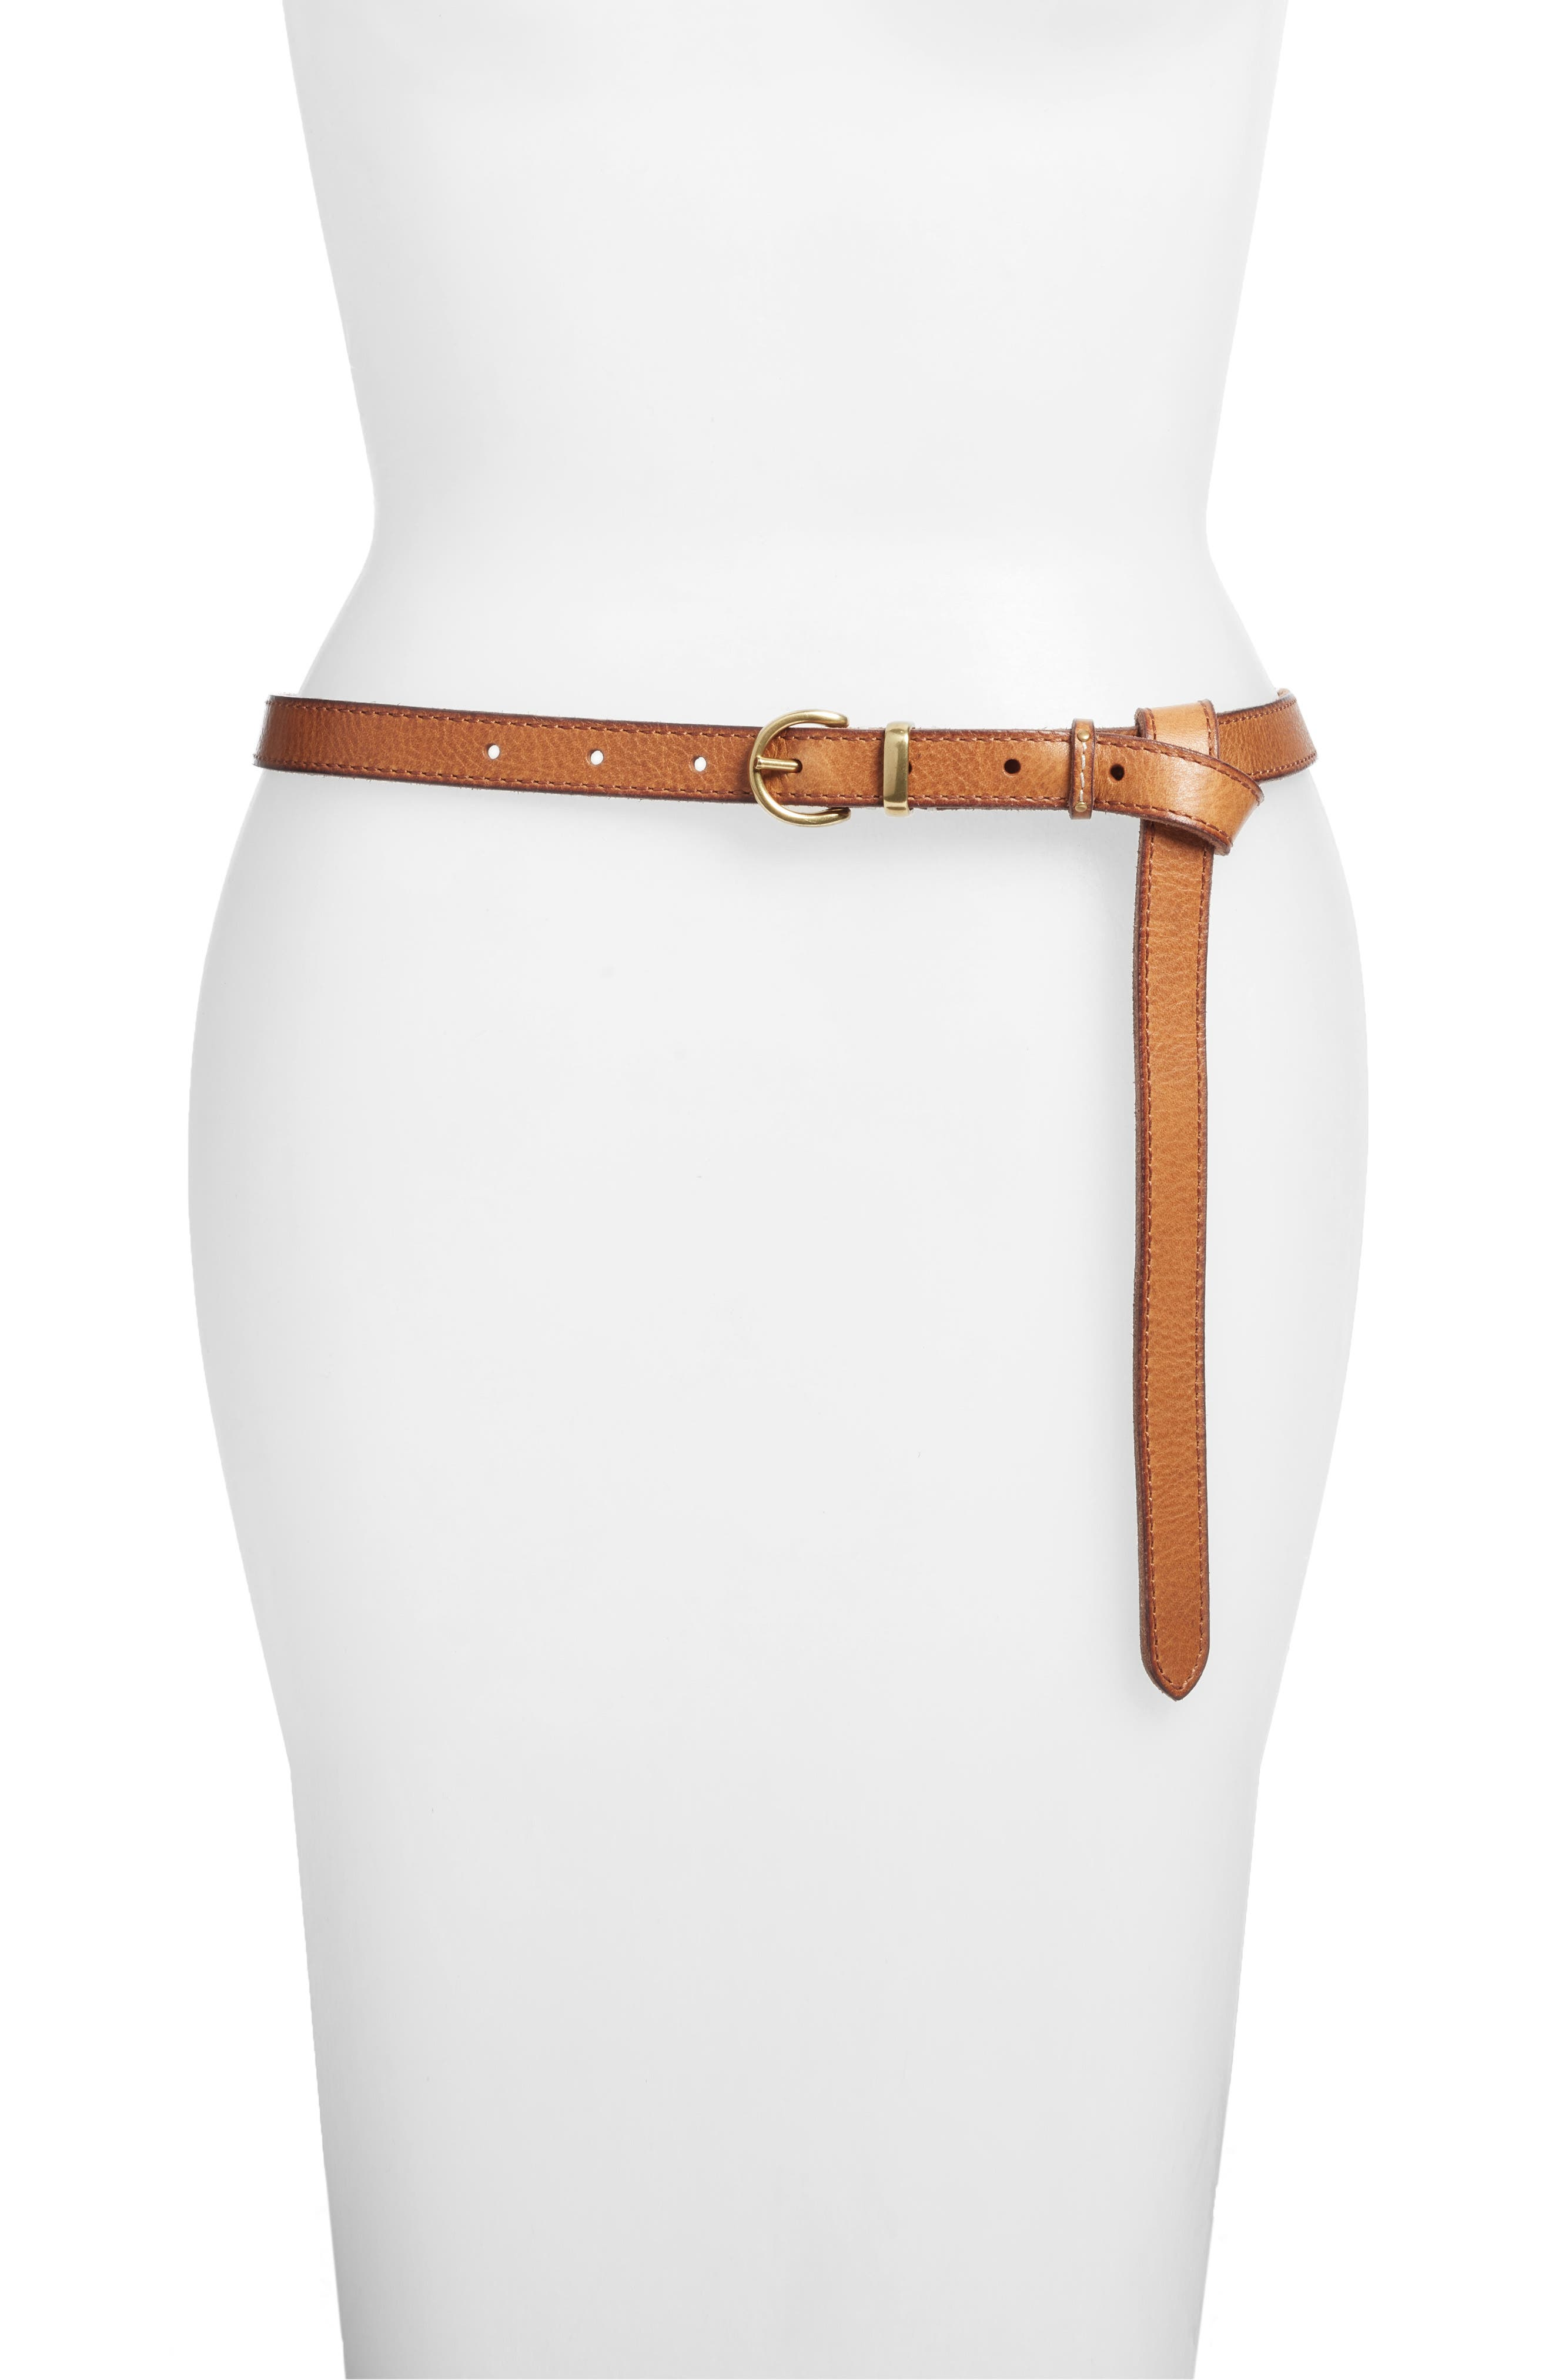 Frye Campus Knotted Leather Belt, Tan